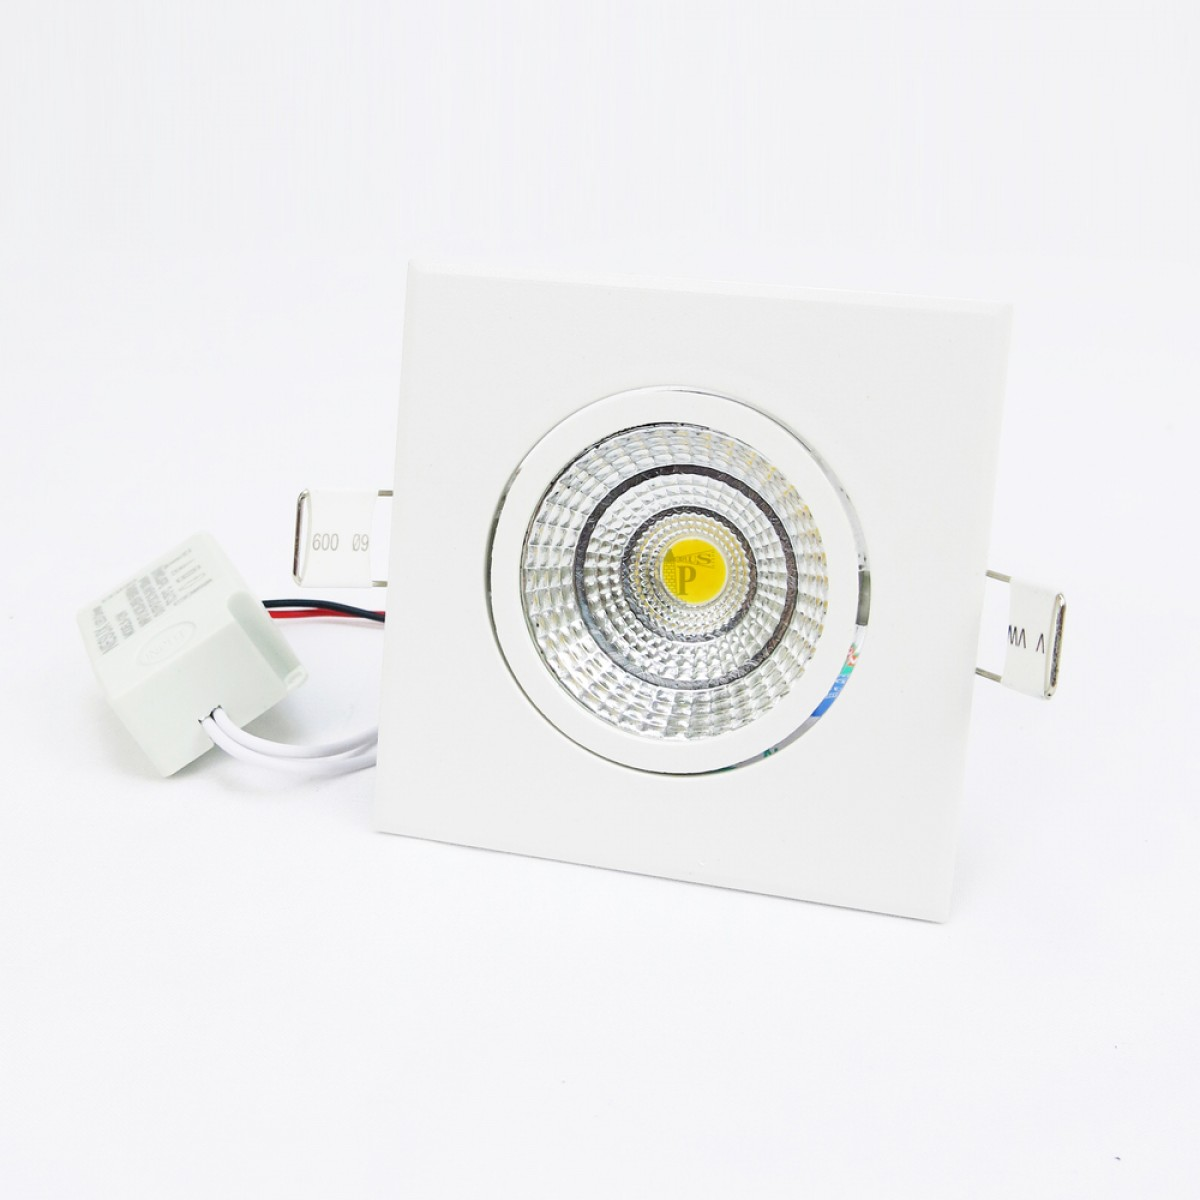 NESUX N3026 5W Directional COB LED Spot Light / LED Down Light Recessed Type Square